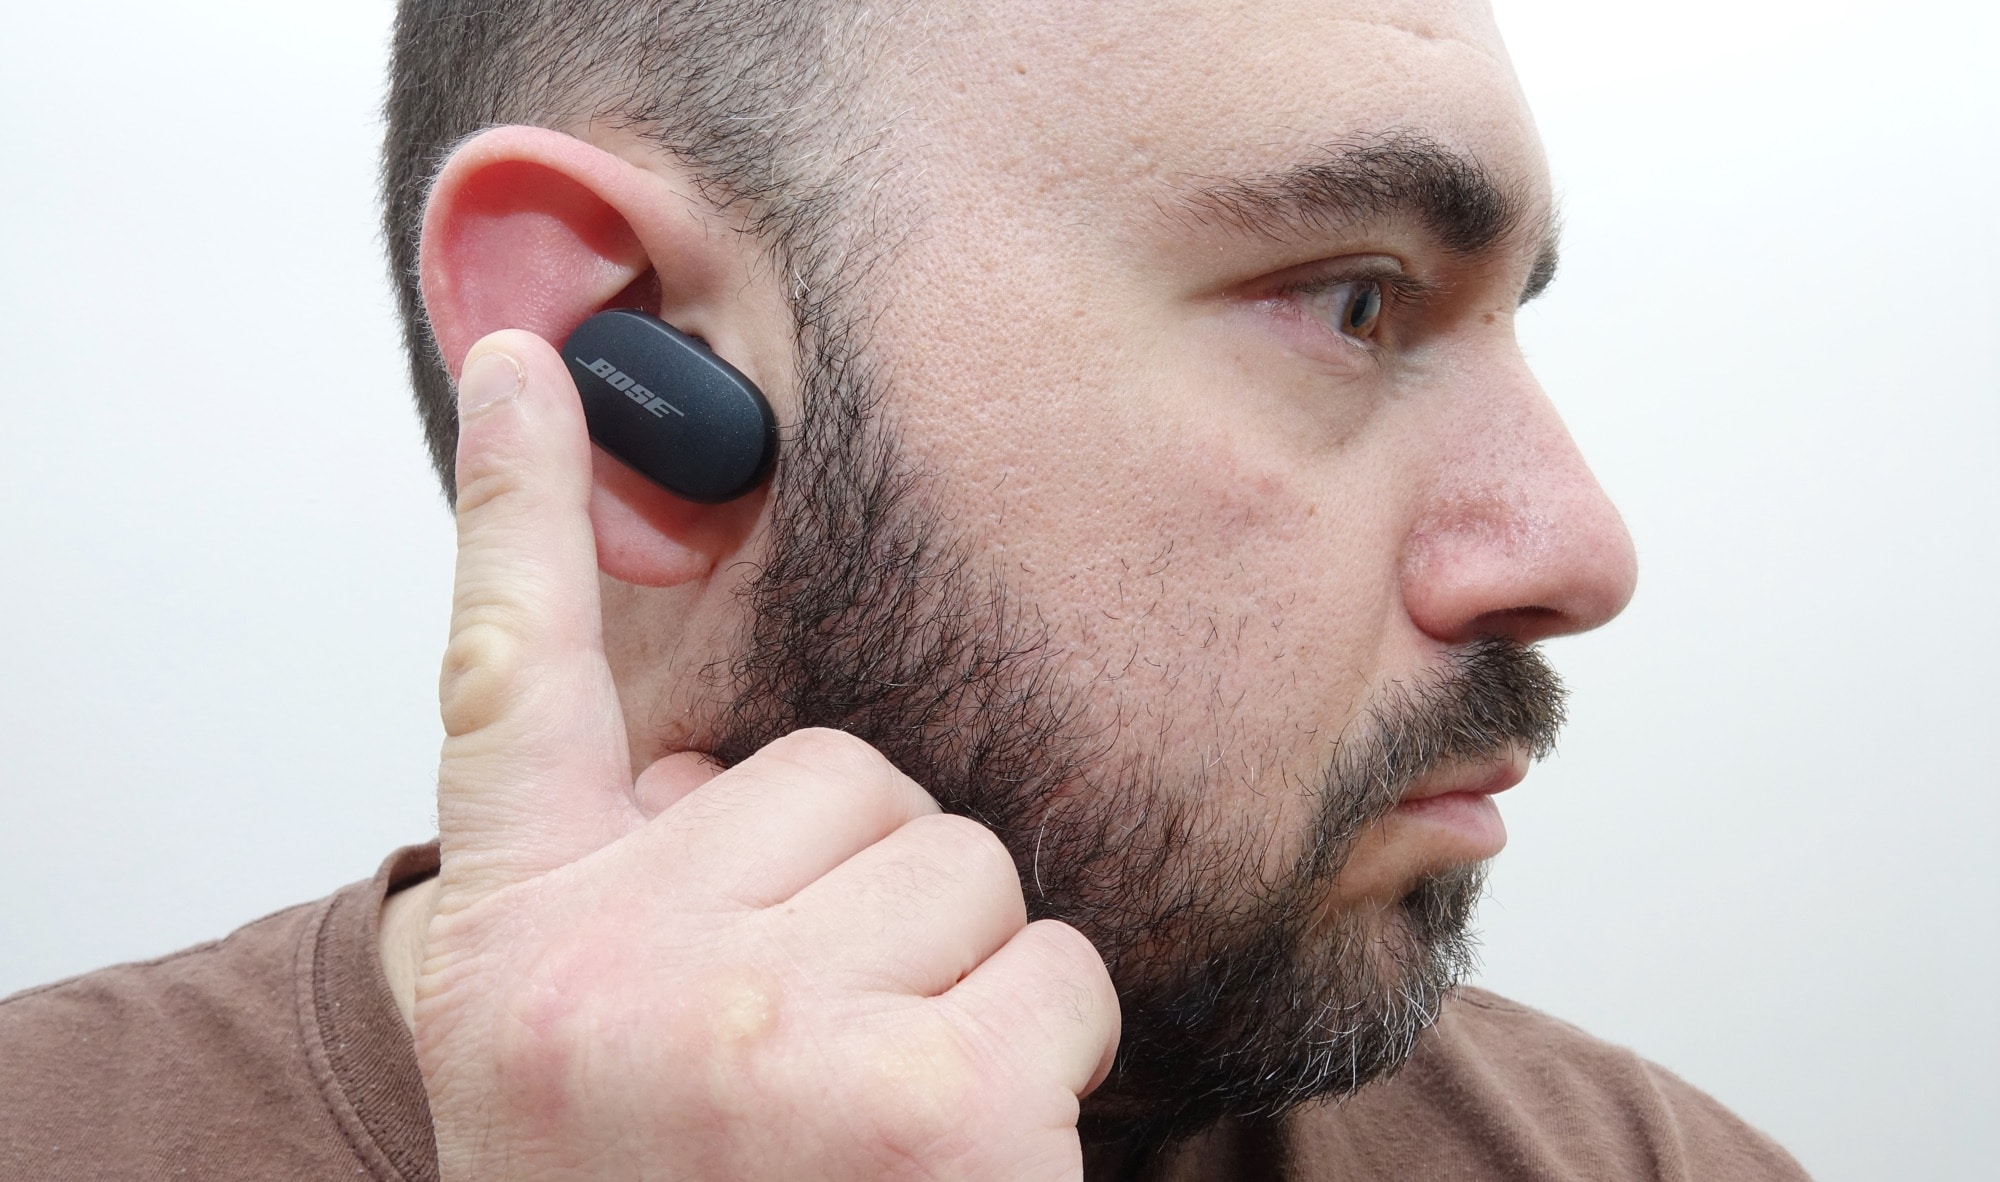 Controlling the Bose QuietComfort Earbuds